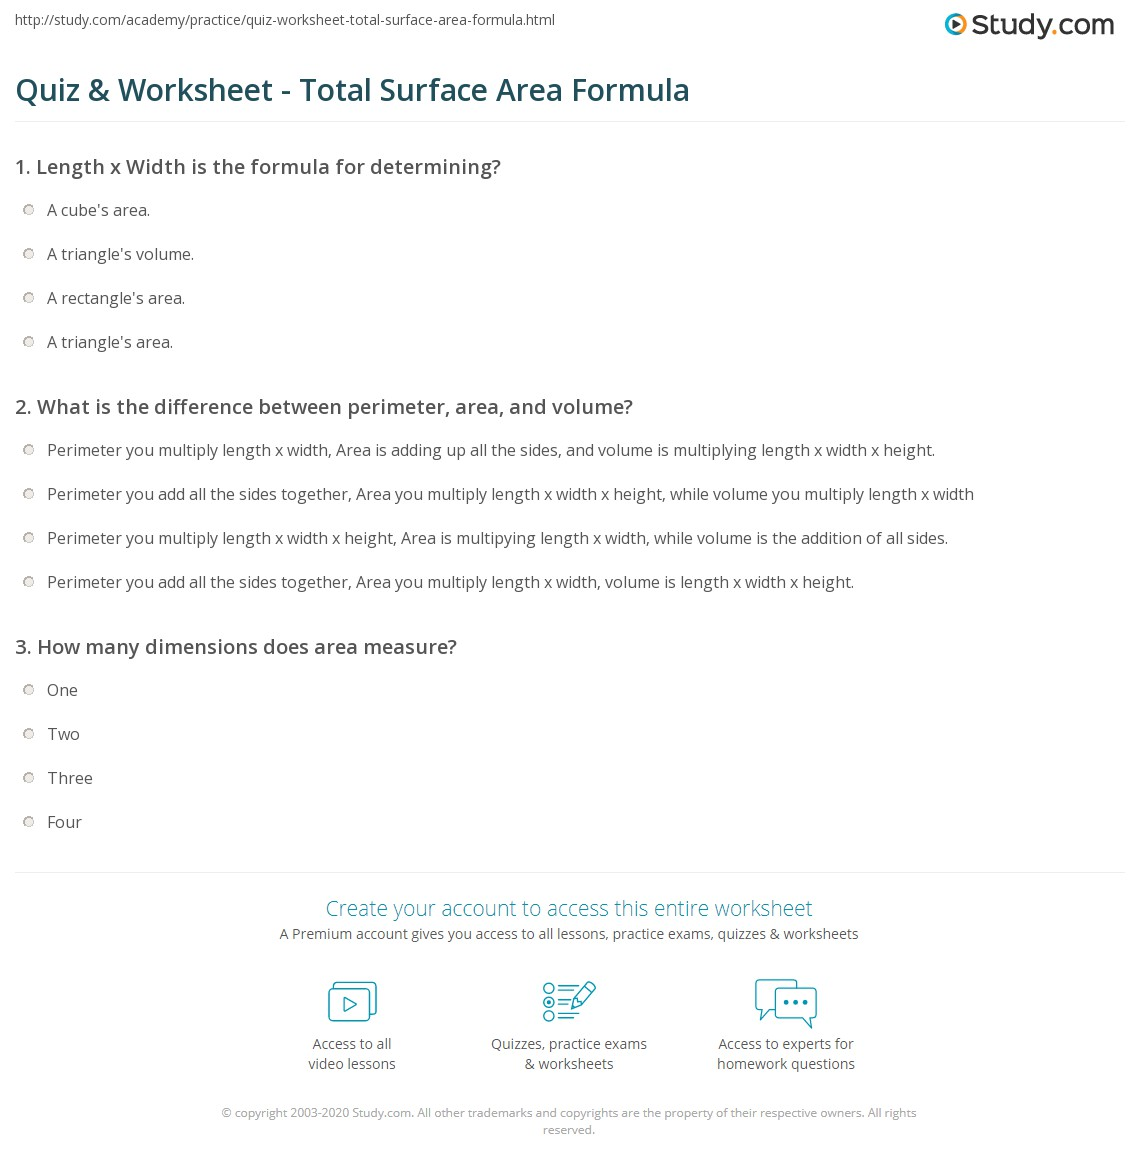 Quiz & Worksheet - Total Surface Area Formula | Study.com